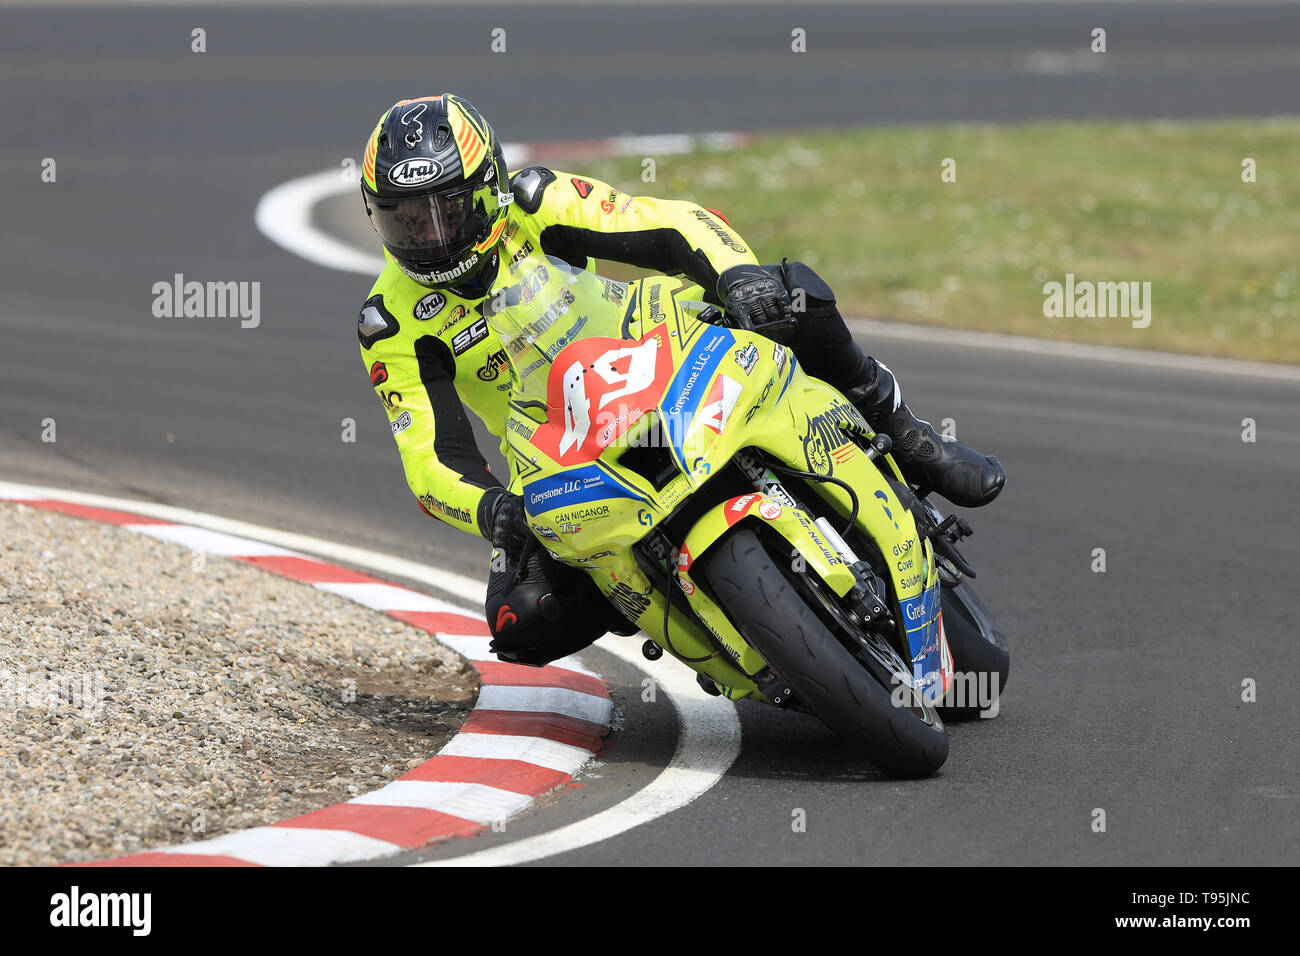 Portrush, Northern Ireland. 16th May, 2019. International North West 200 Motorcycle road racing, Thursday practice and evening racing; Spain's Raul Torras Martinez on the Raul Torras Kawasaki during the SuperBike qualifying session Credit: Action Plus Sports/Alamy Live News - Stock Image